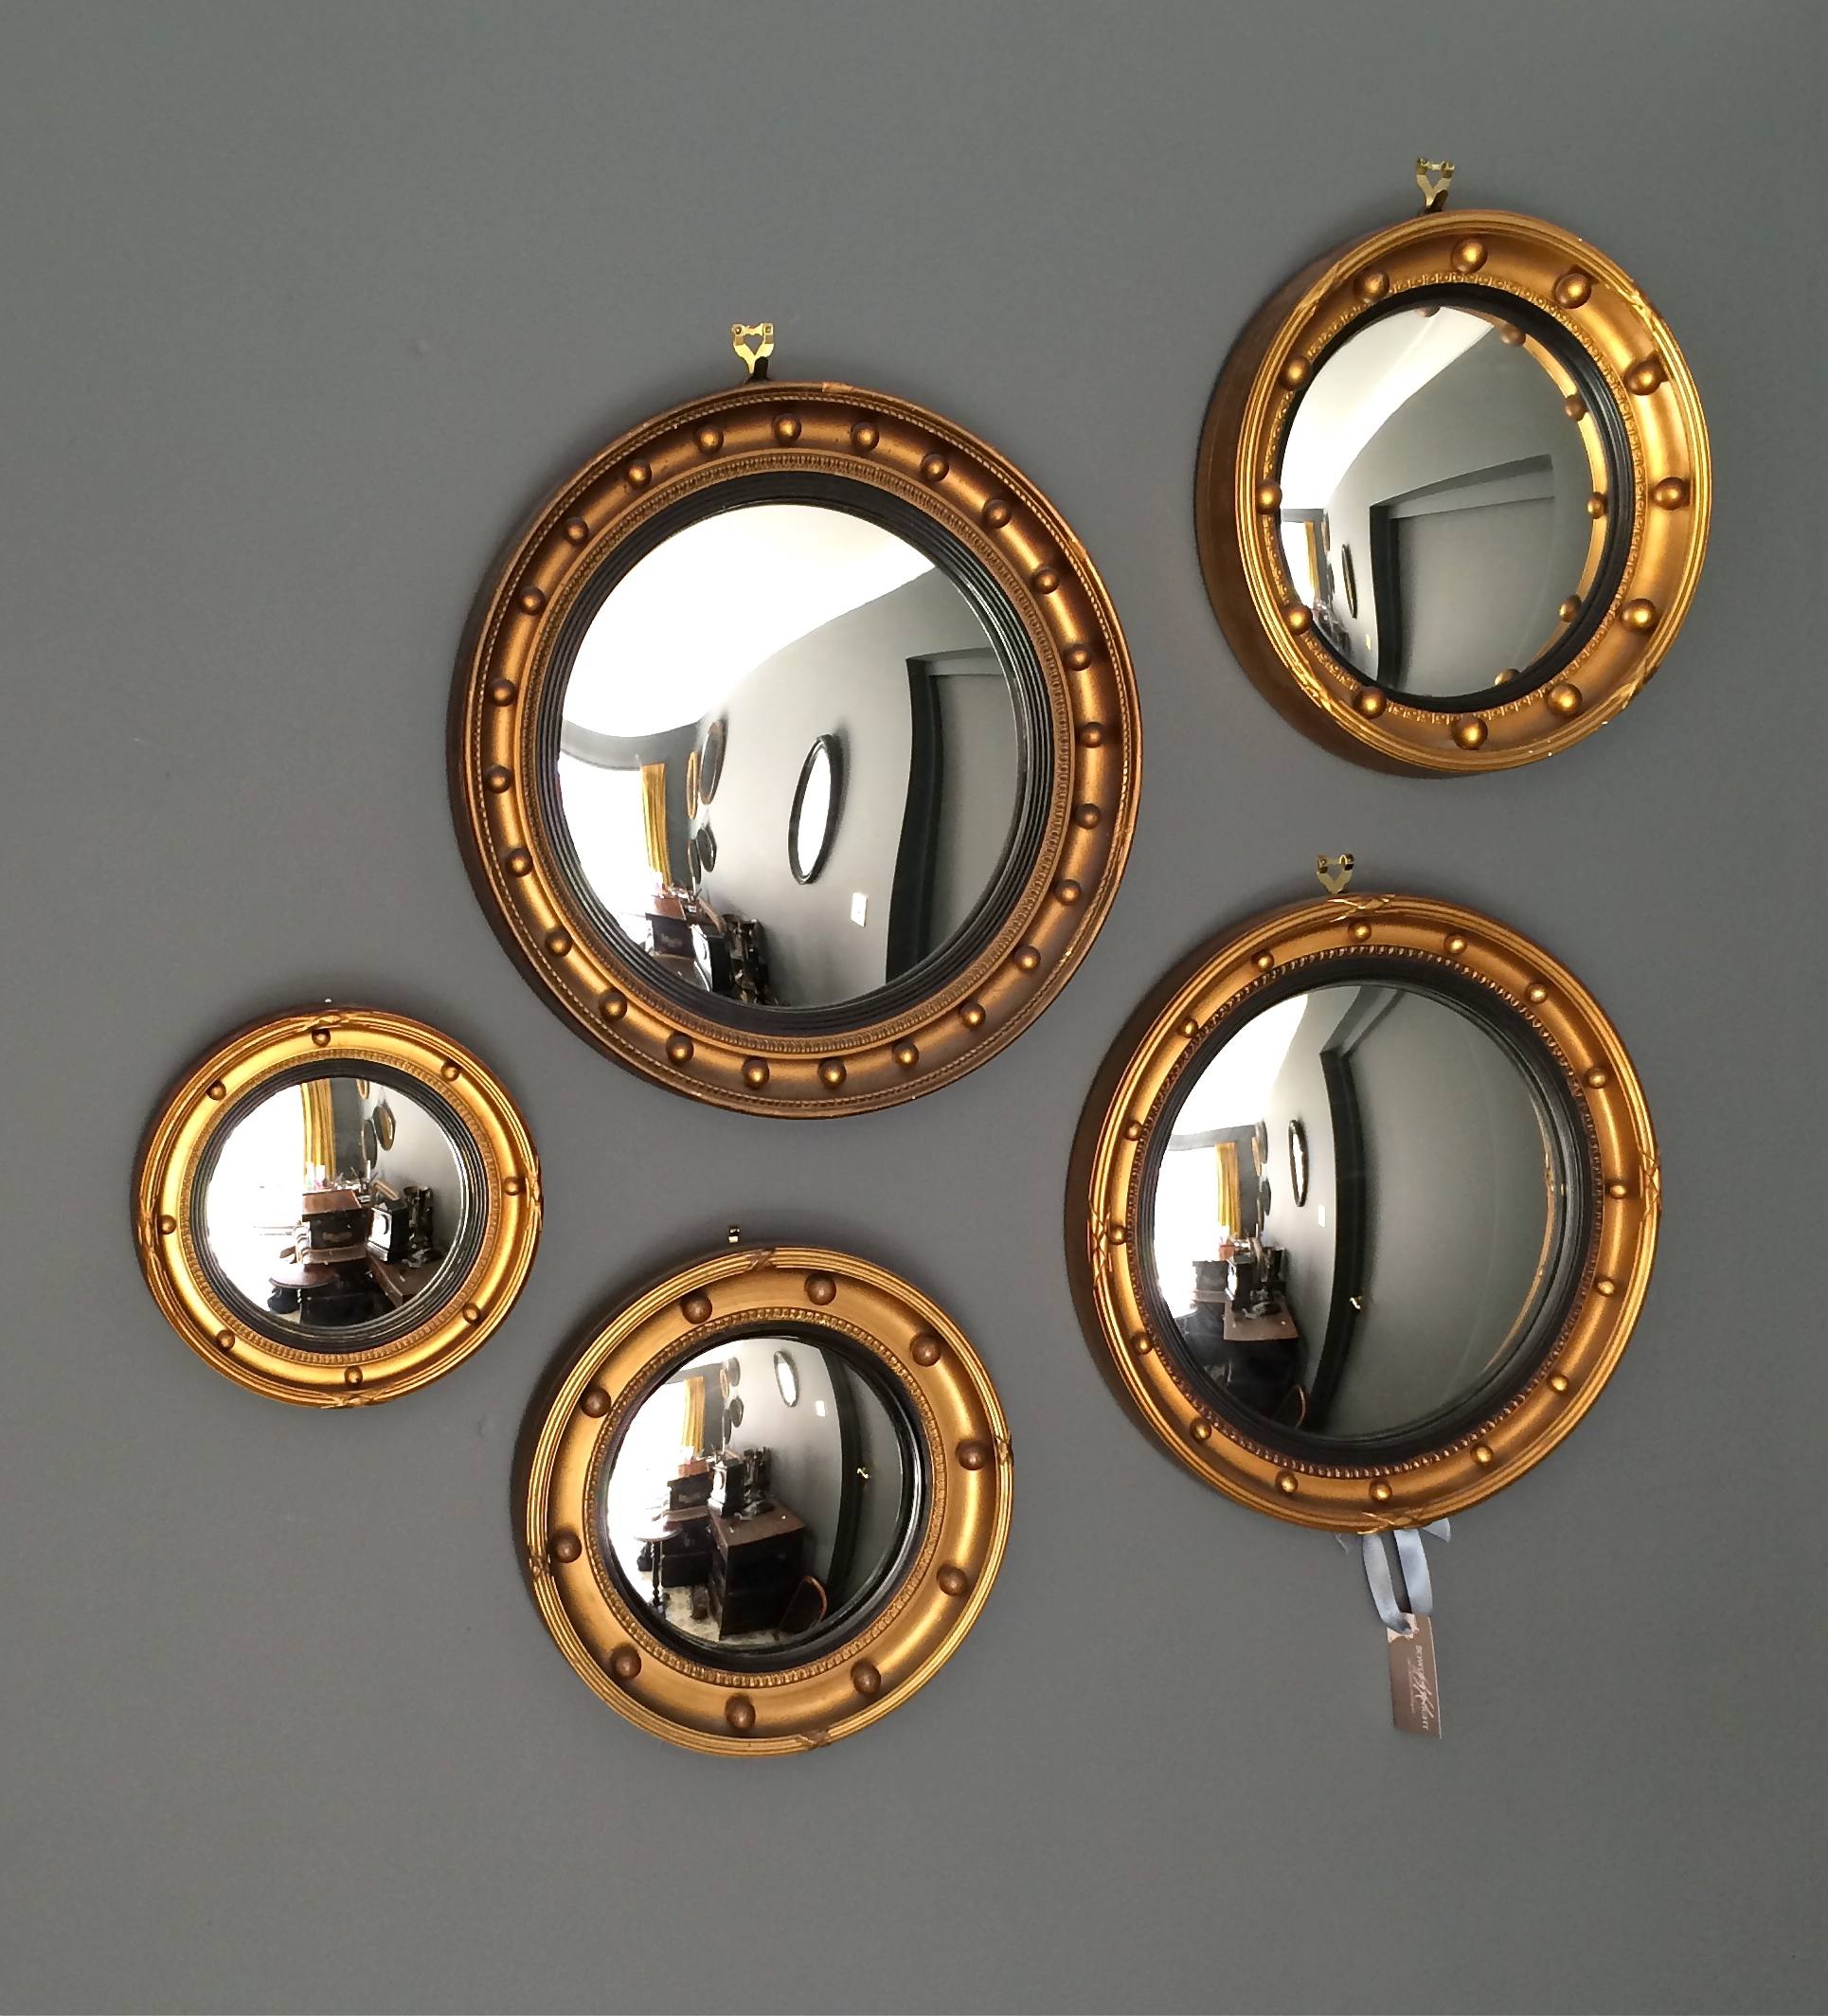 Summer Styling The Decorative Antique Way At Bowden Knight Within Convex Mirror Decorative (Image 15 of 15)